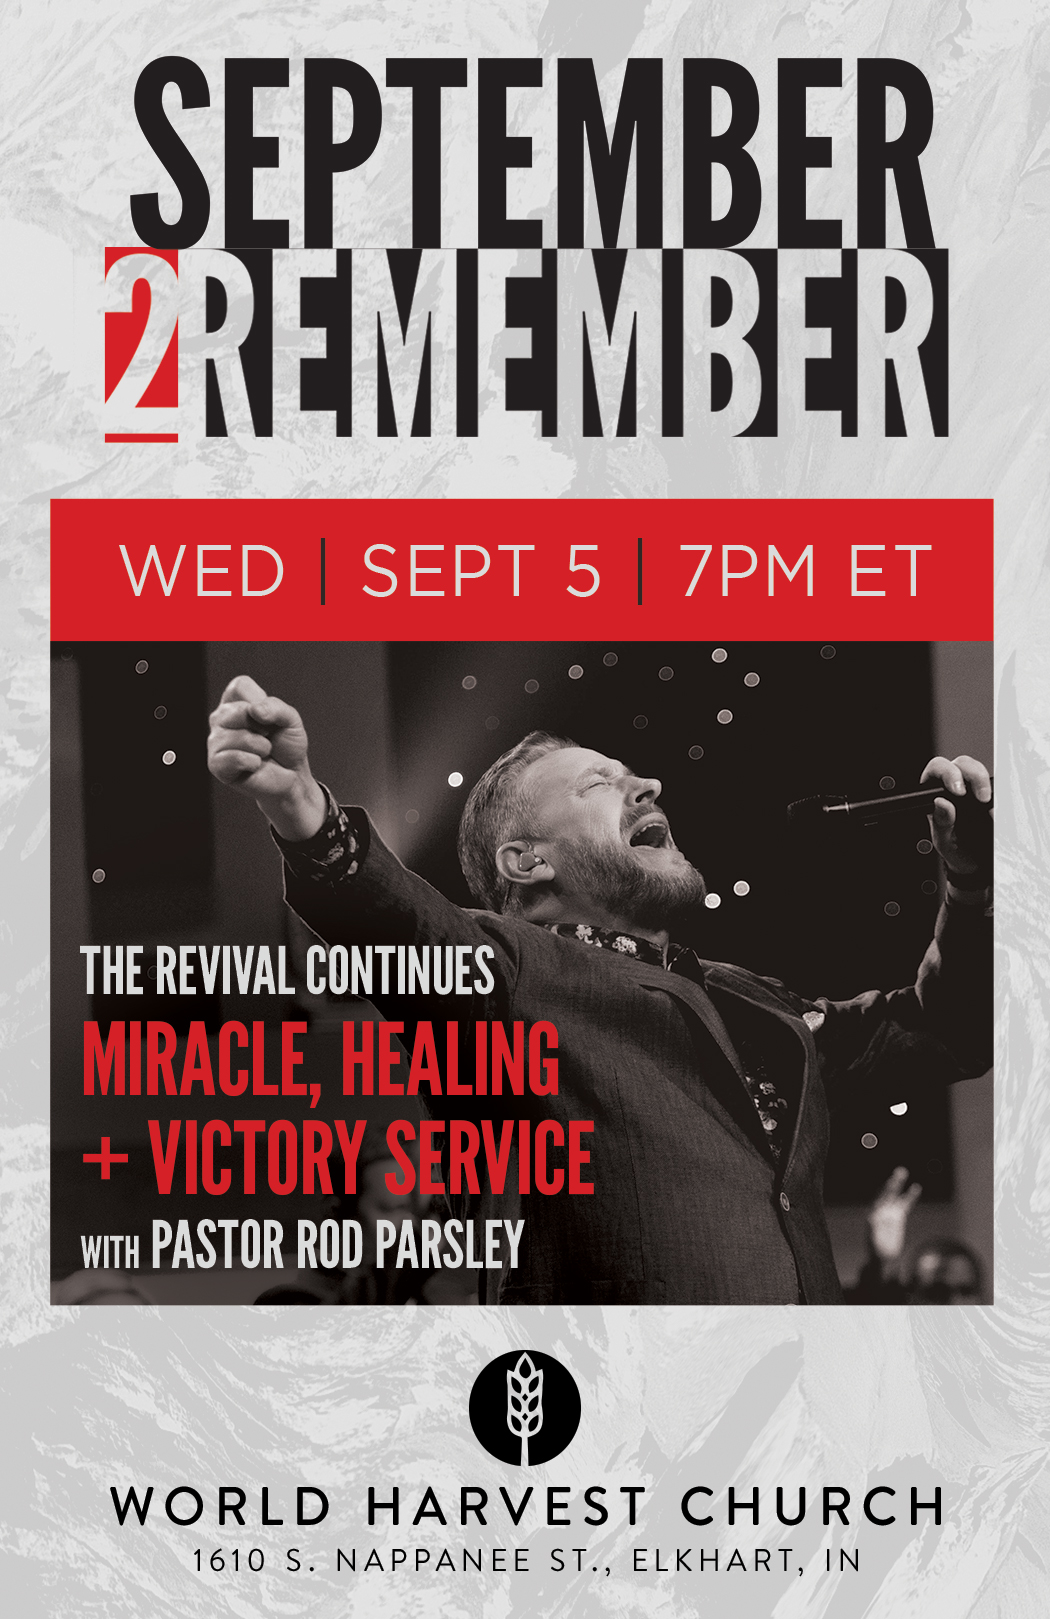 The Revival Continues: Miracle, Healing and Victory Service with Pastor Parsley  |  World Harvest Church - Elkhart, IN